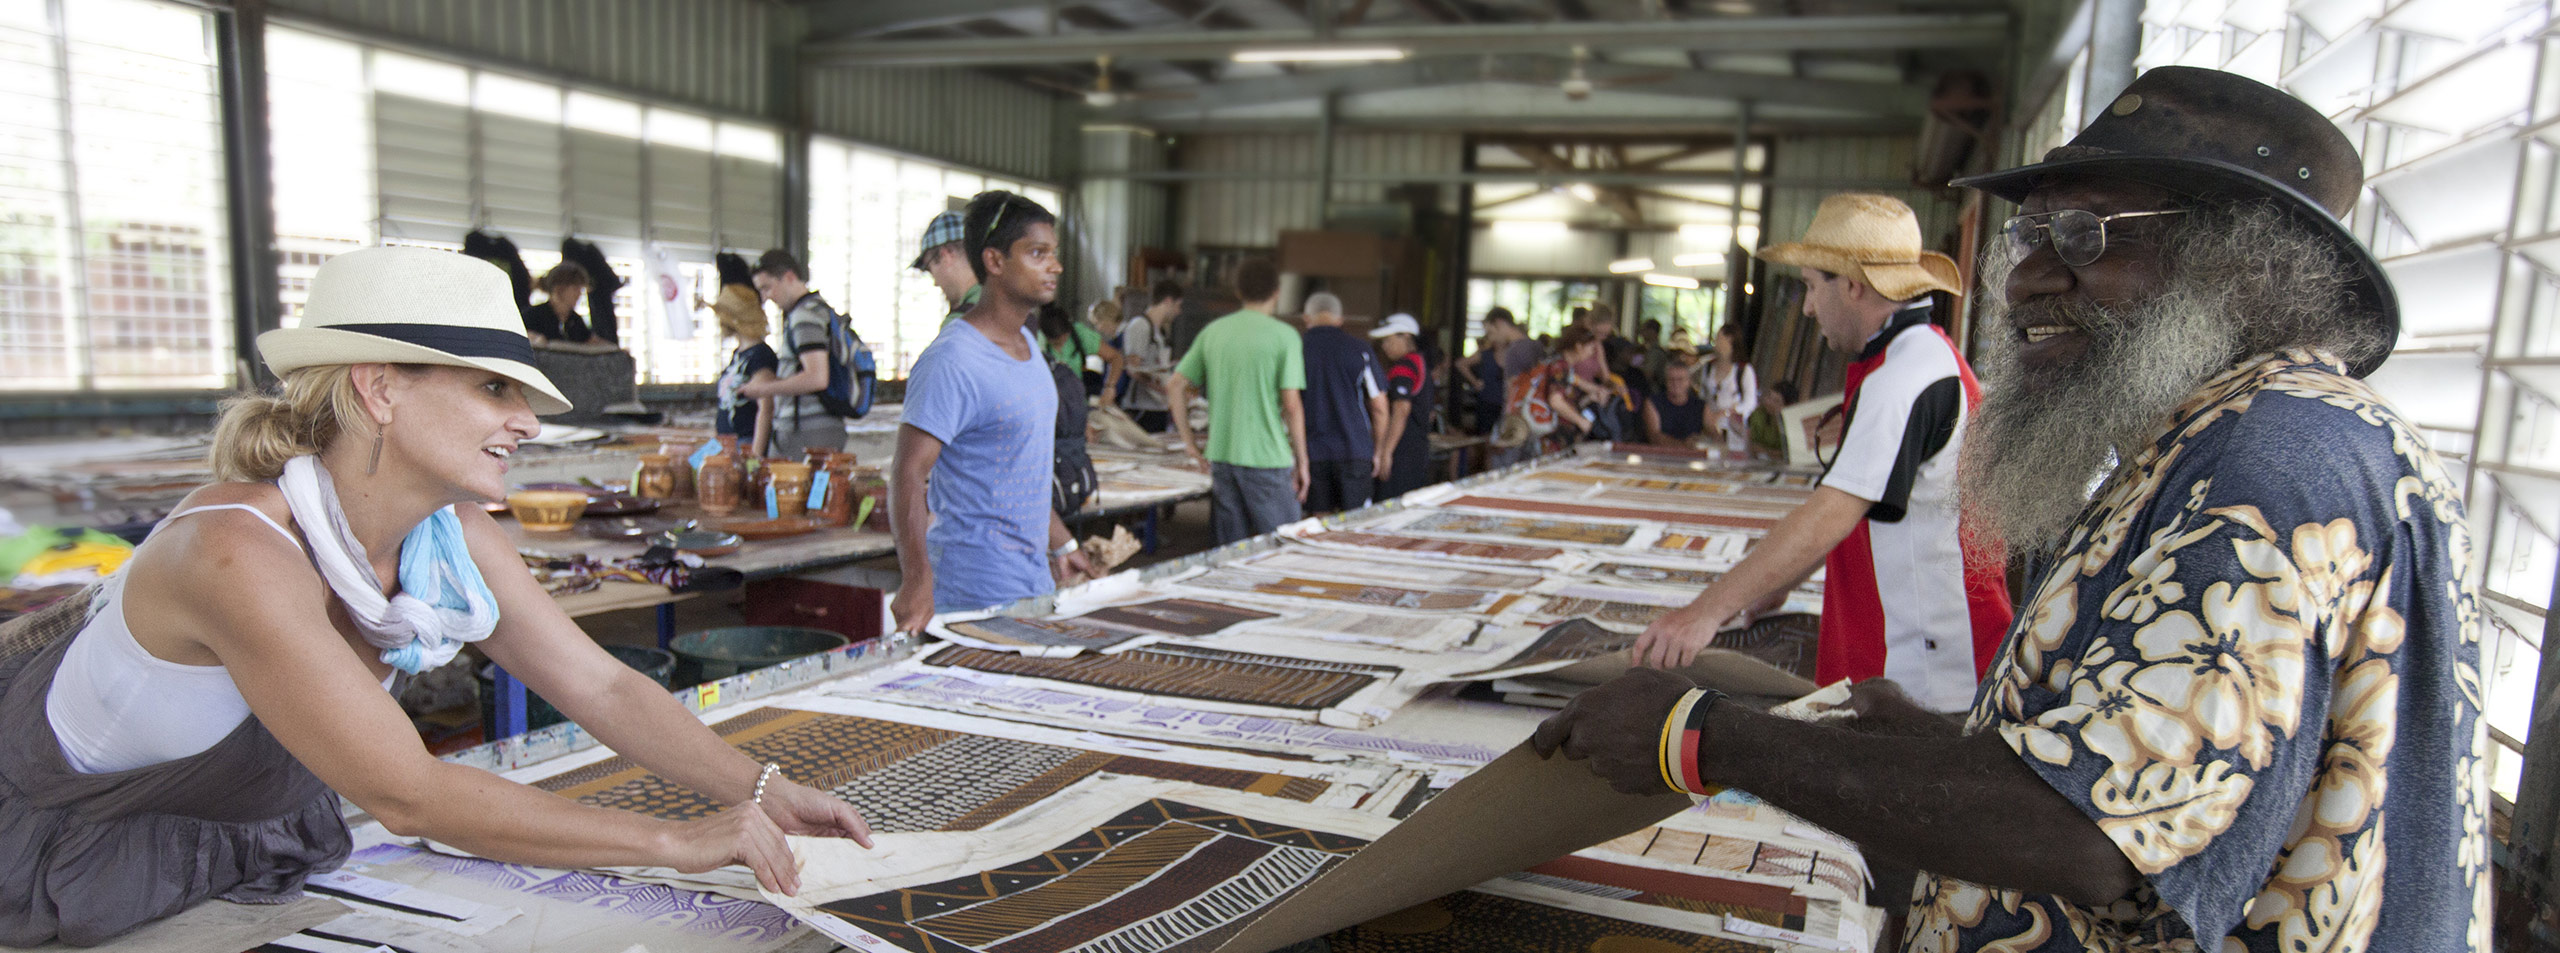 Tiwi Islands Art Workshop